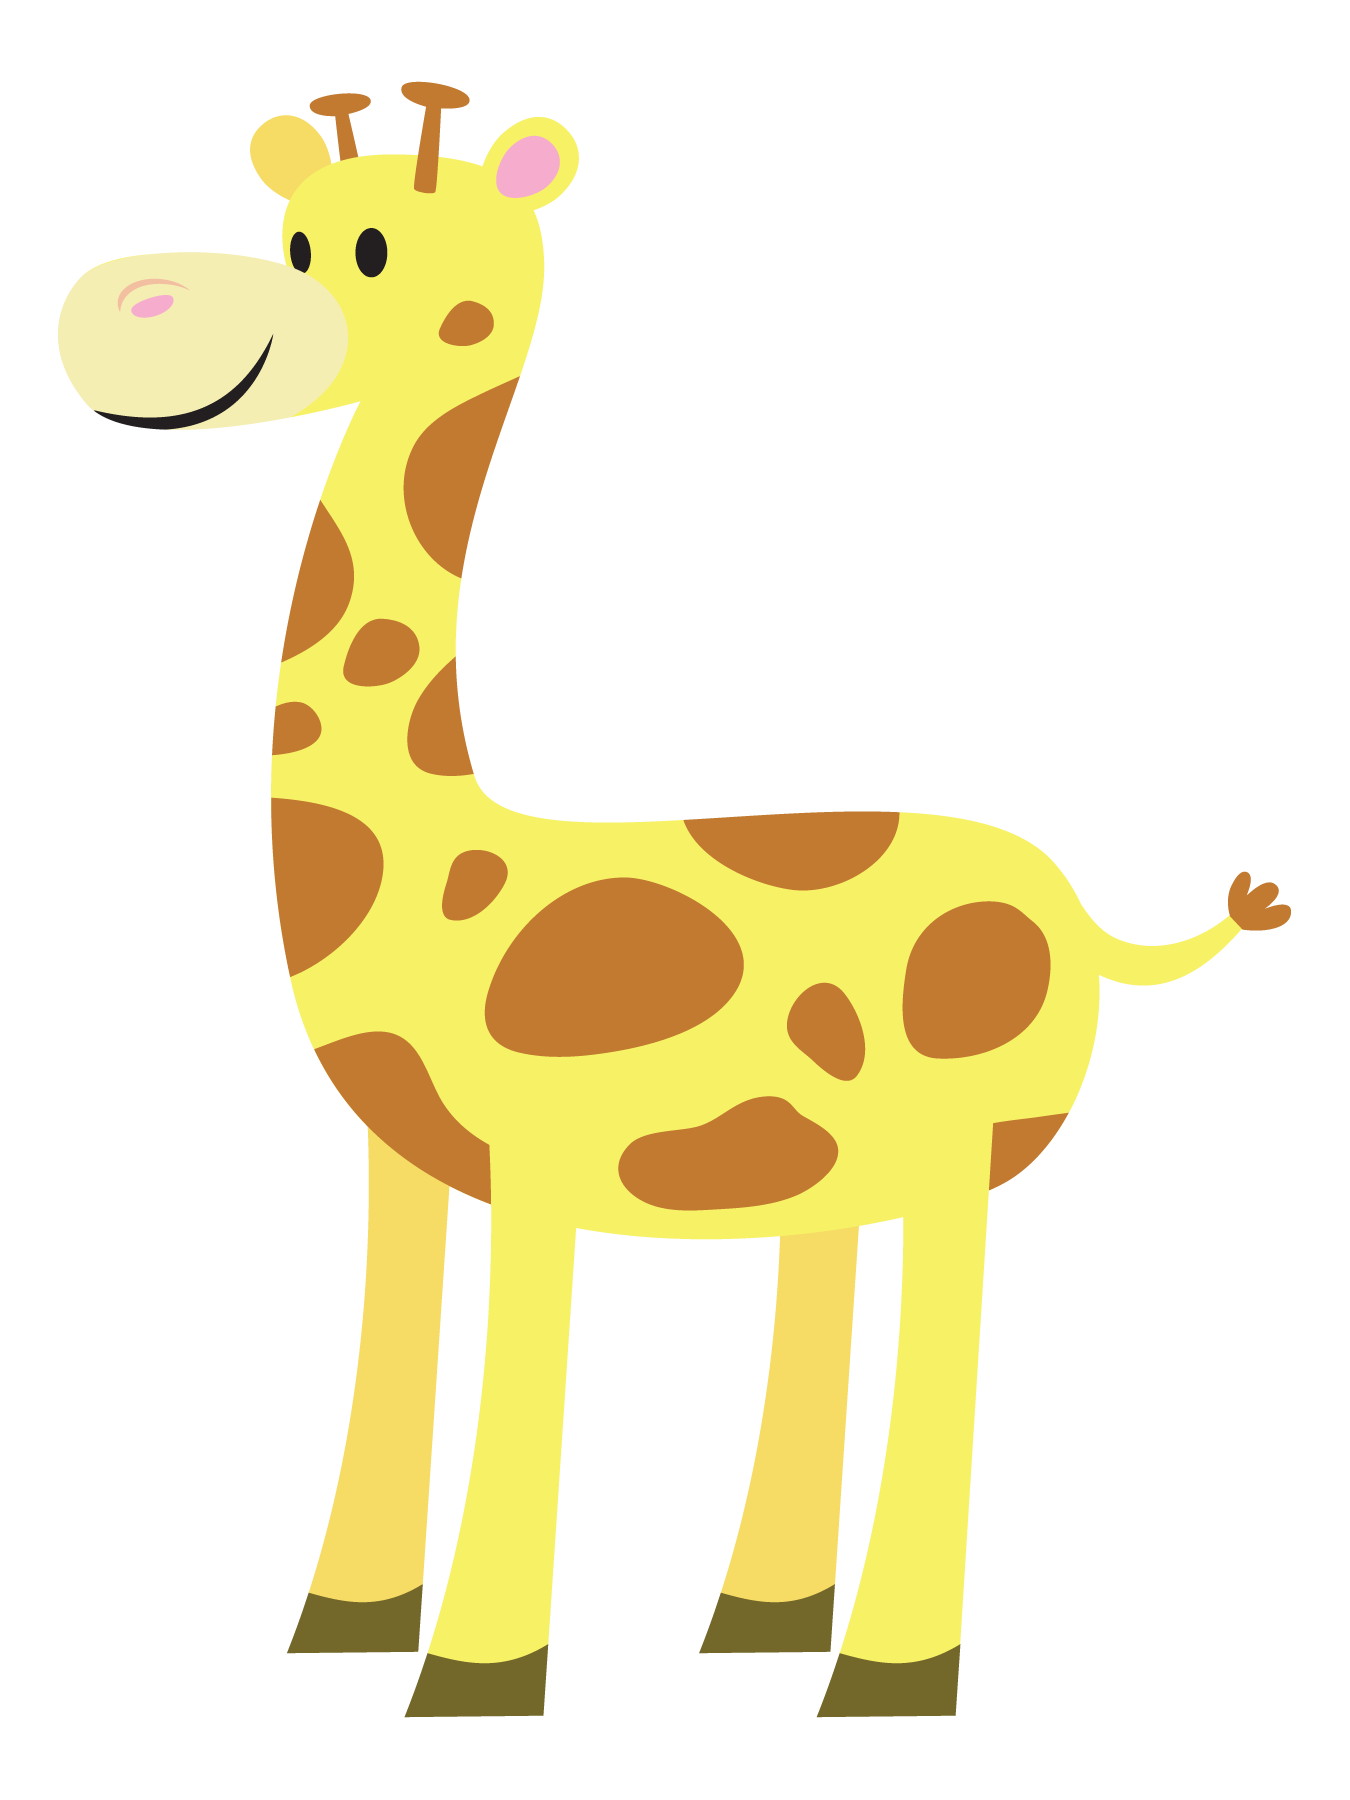 Free Cartoon Baby Giraffe Images, Download Free Clip Art.